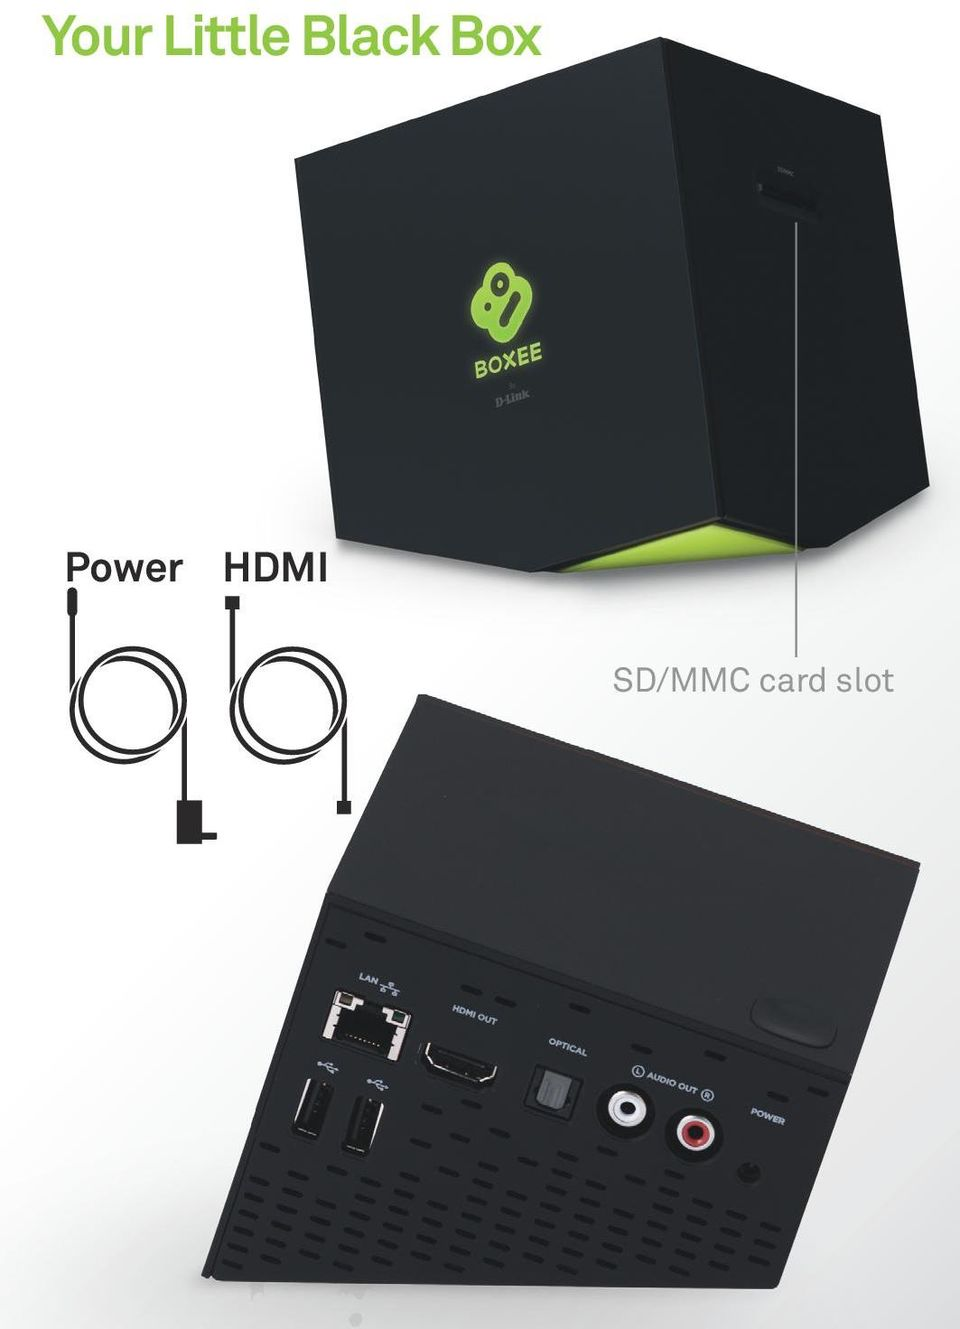 Power HDMI